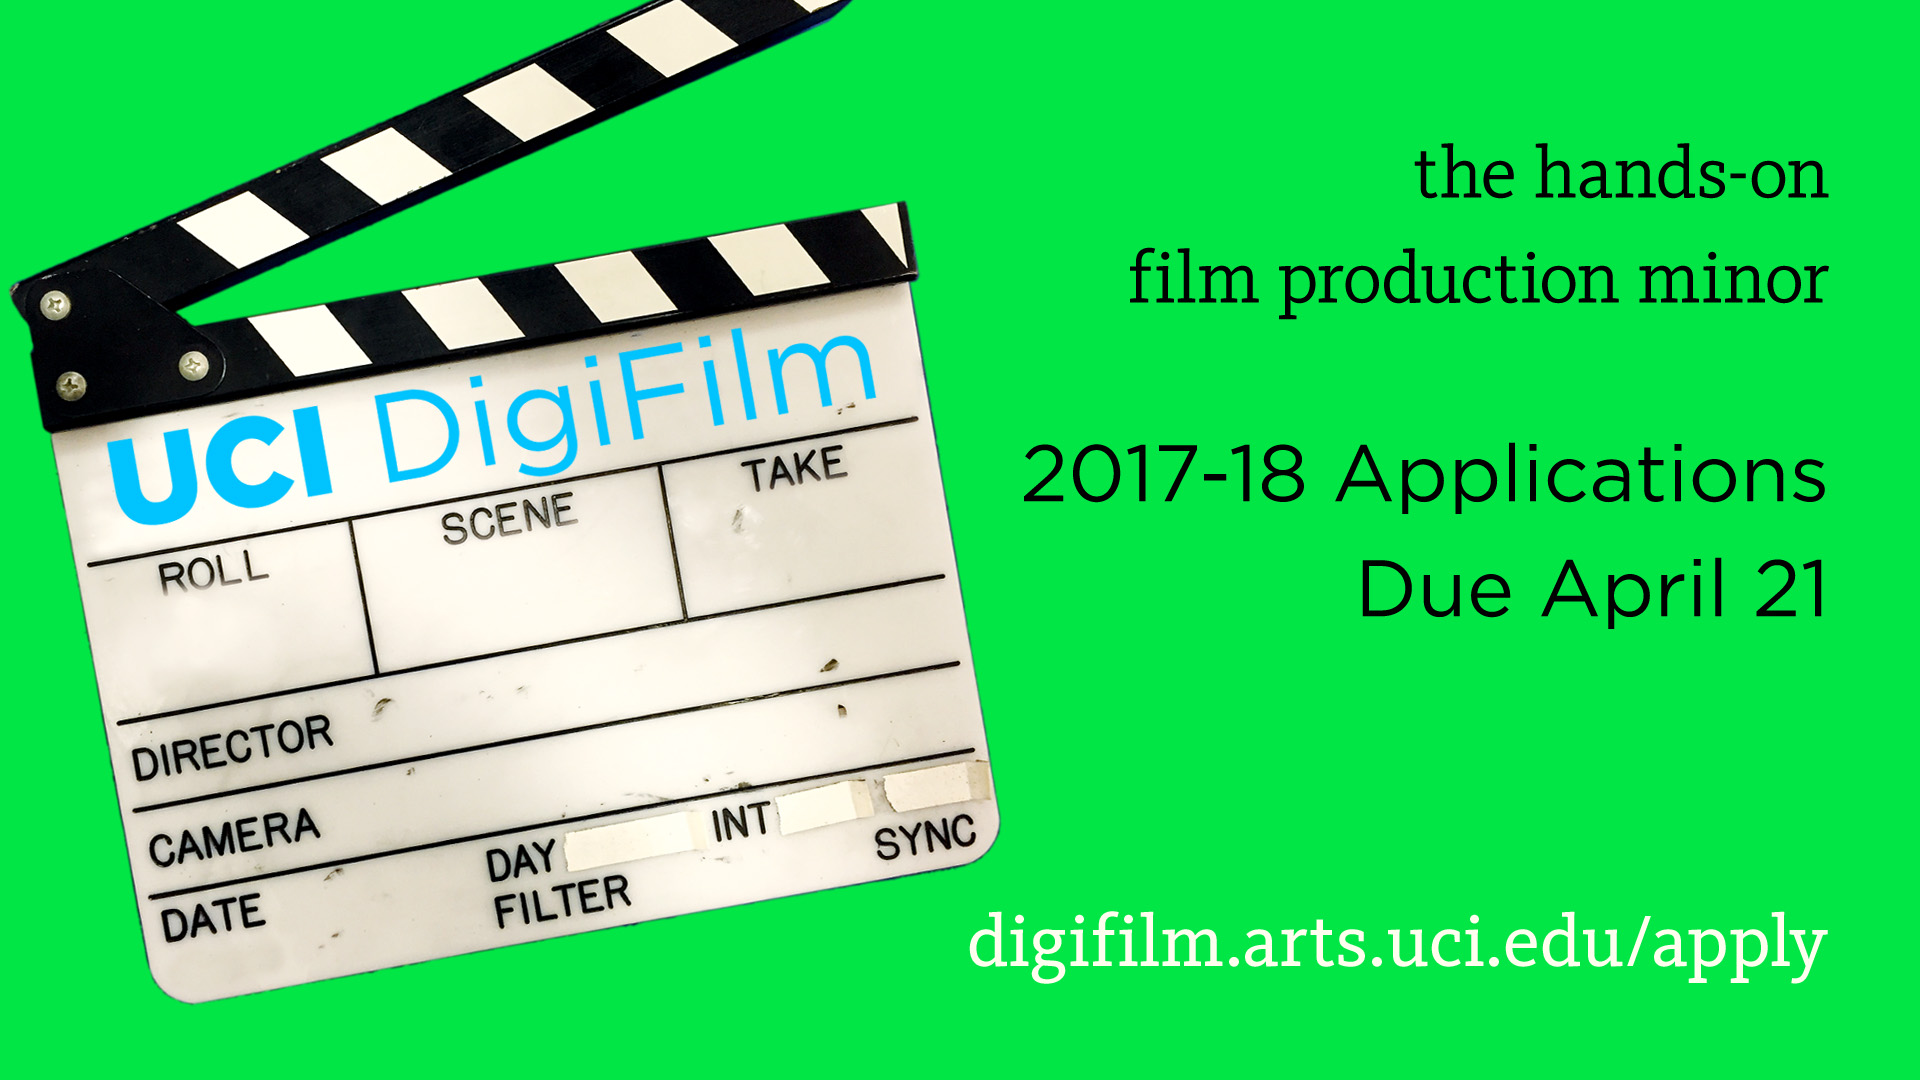 UCI DigiFilm is the hands-on UCI film production program. Applications for the 2017-18 program are due April 21.